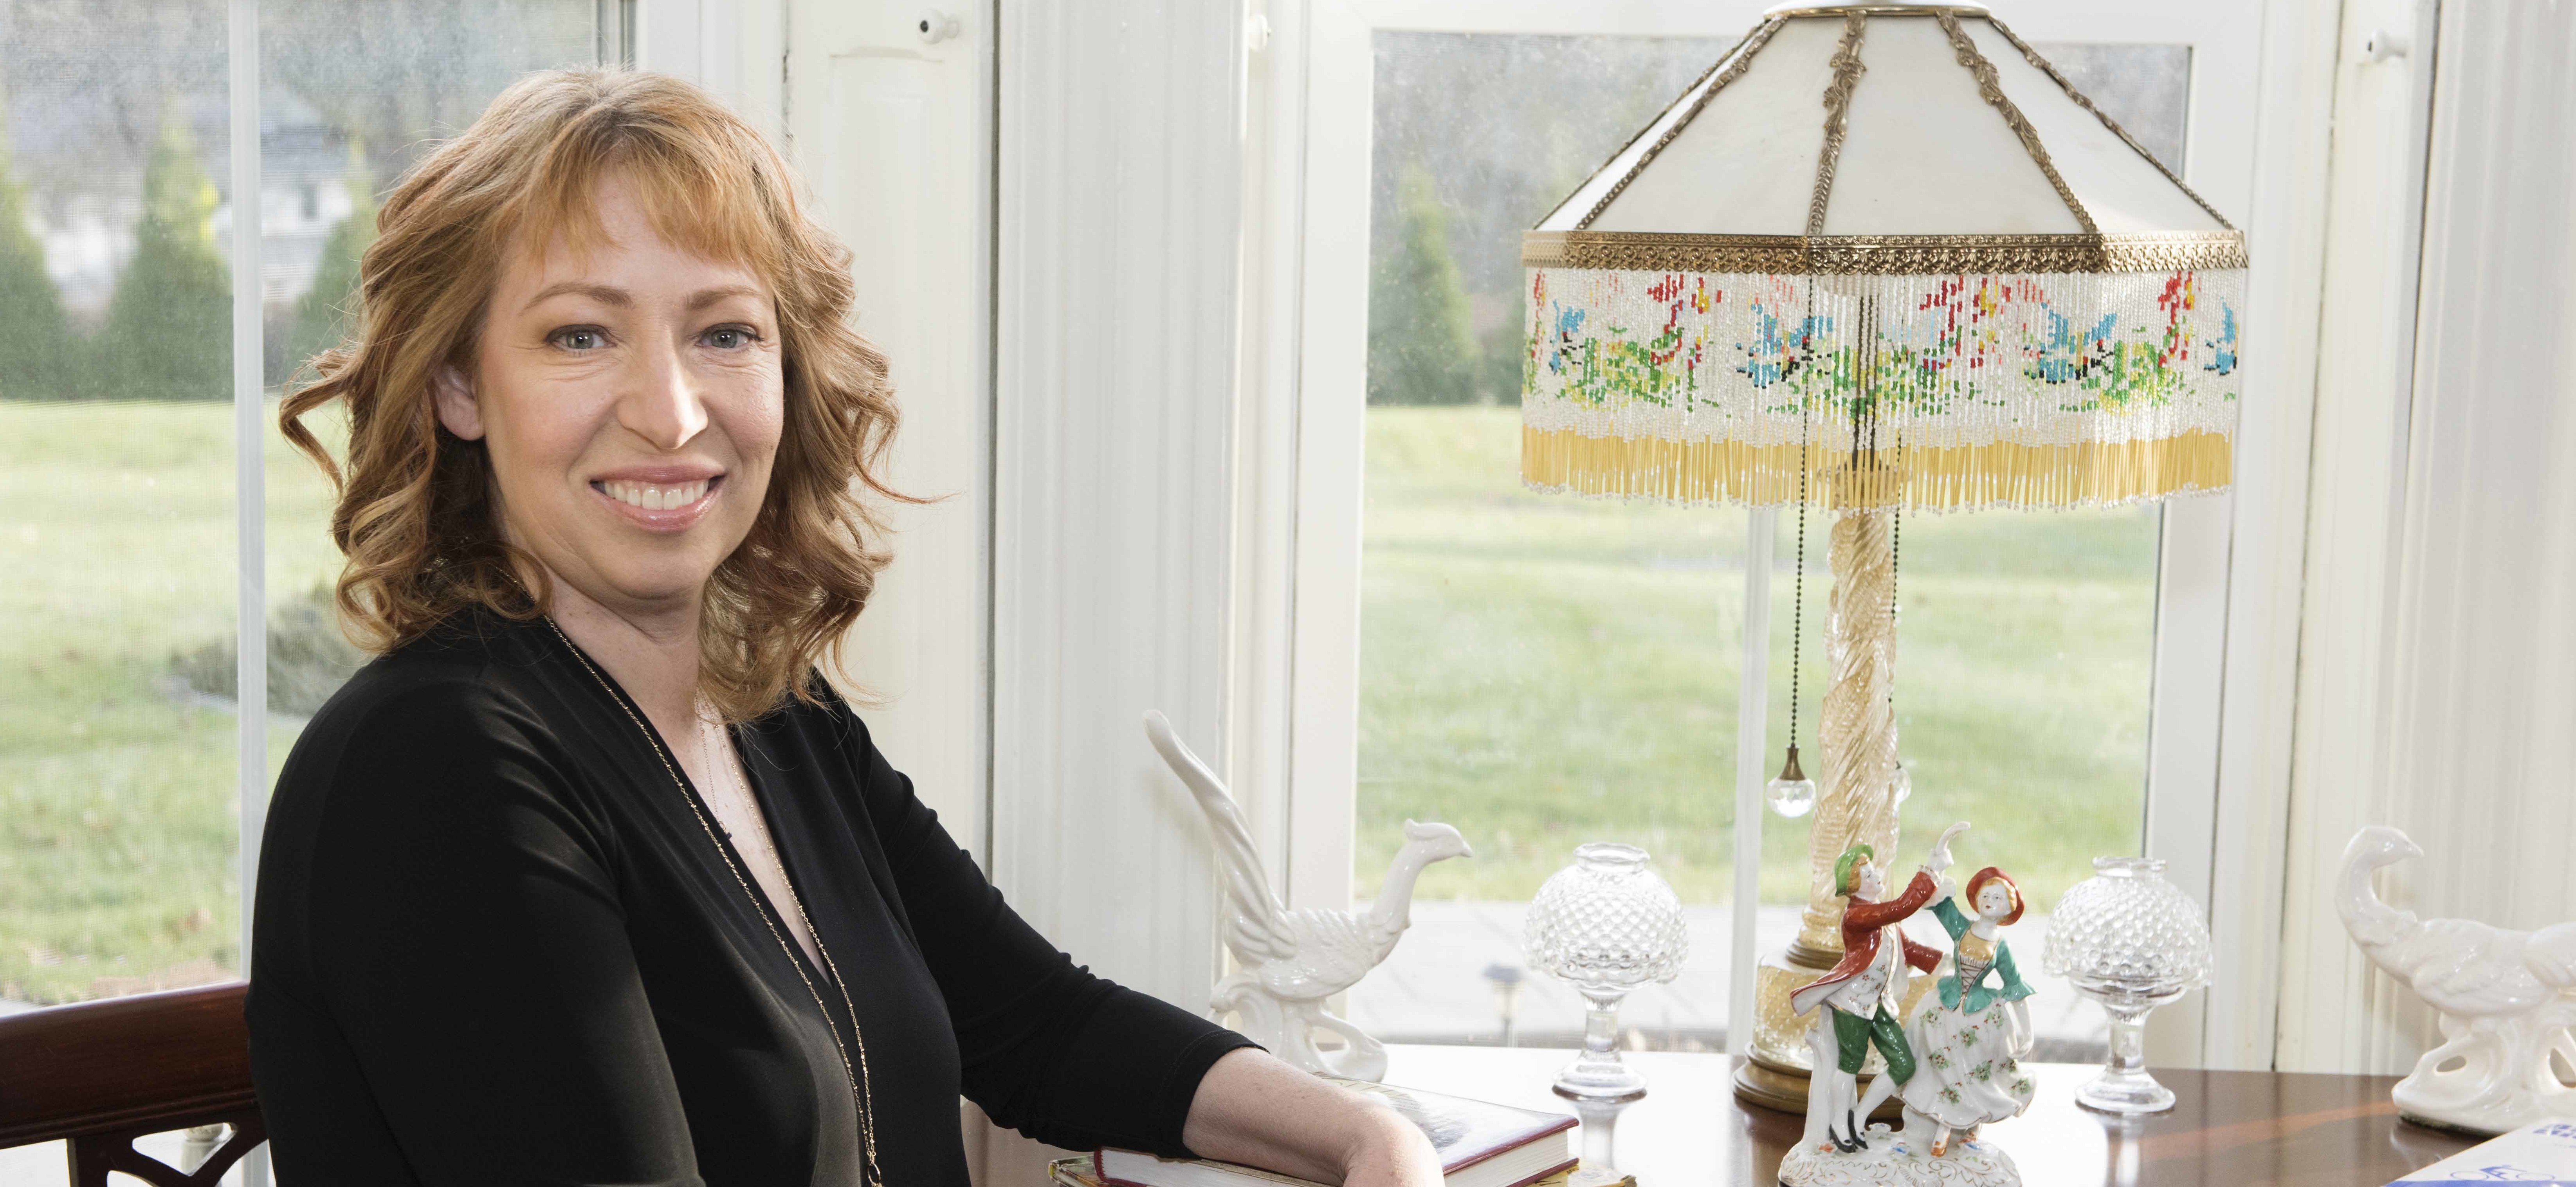 lisa sitting in front of window with recipe books and antique lamp